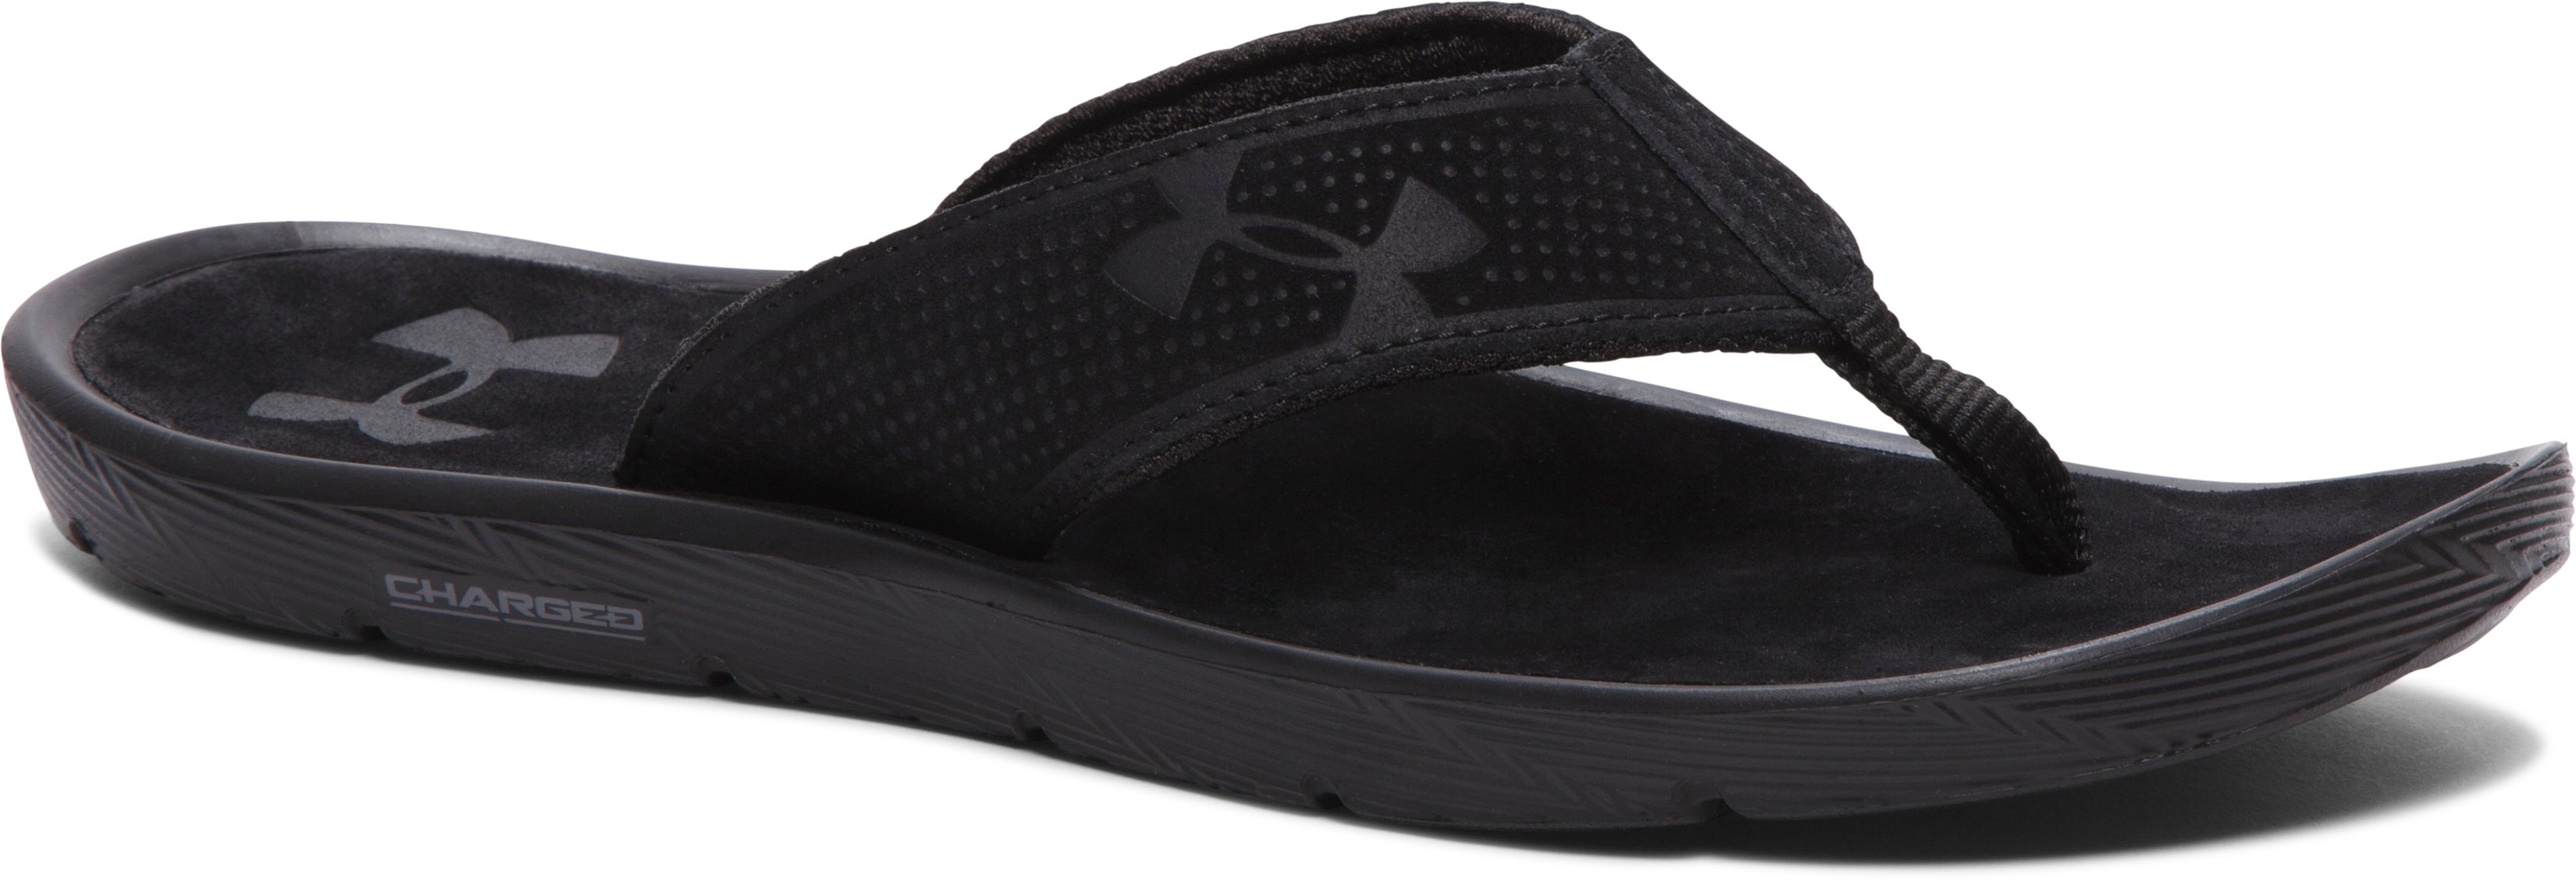 Men's UA Elite Harbor Sandals, Black